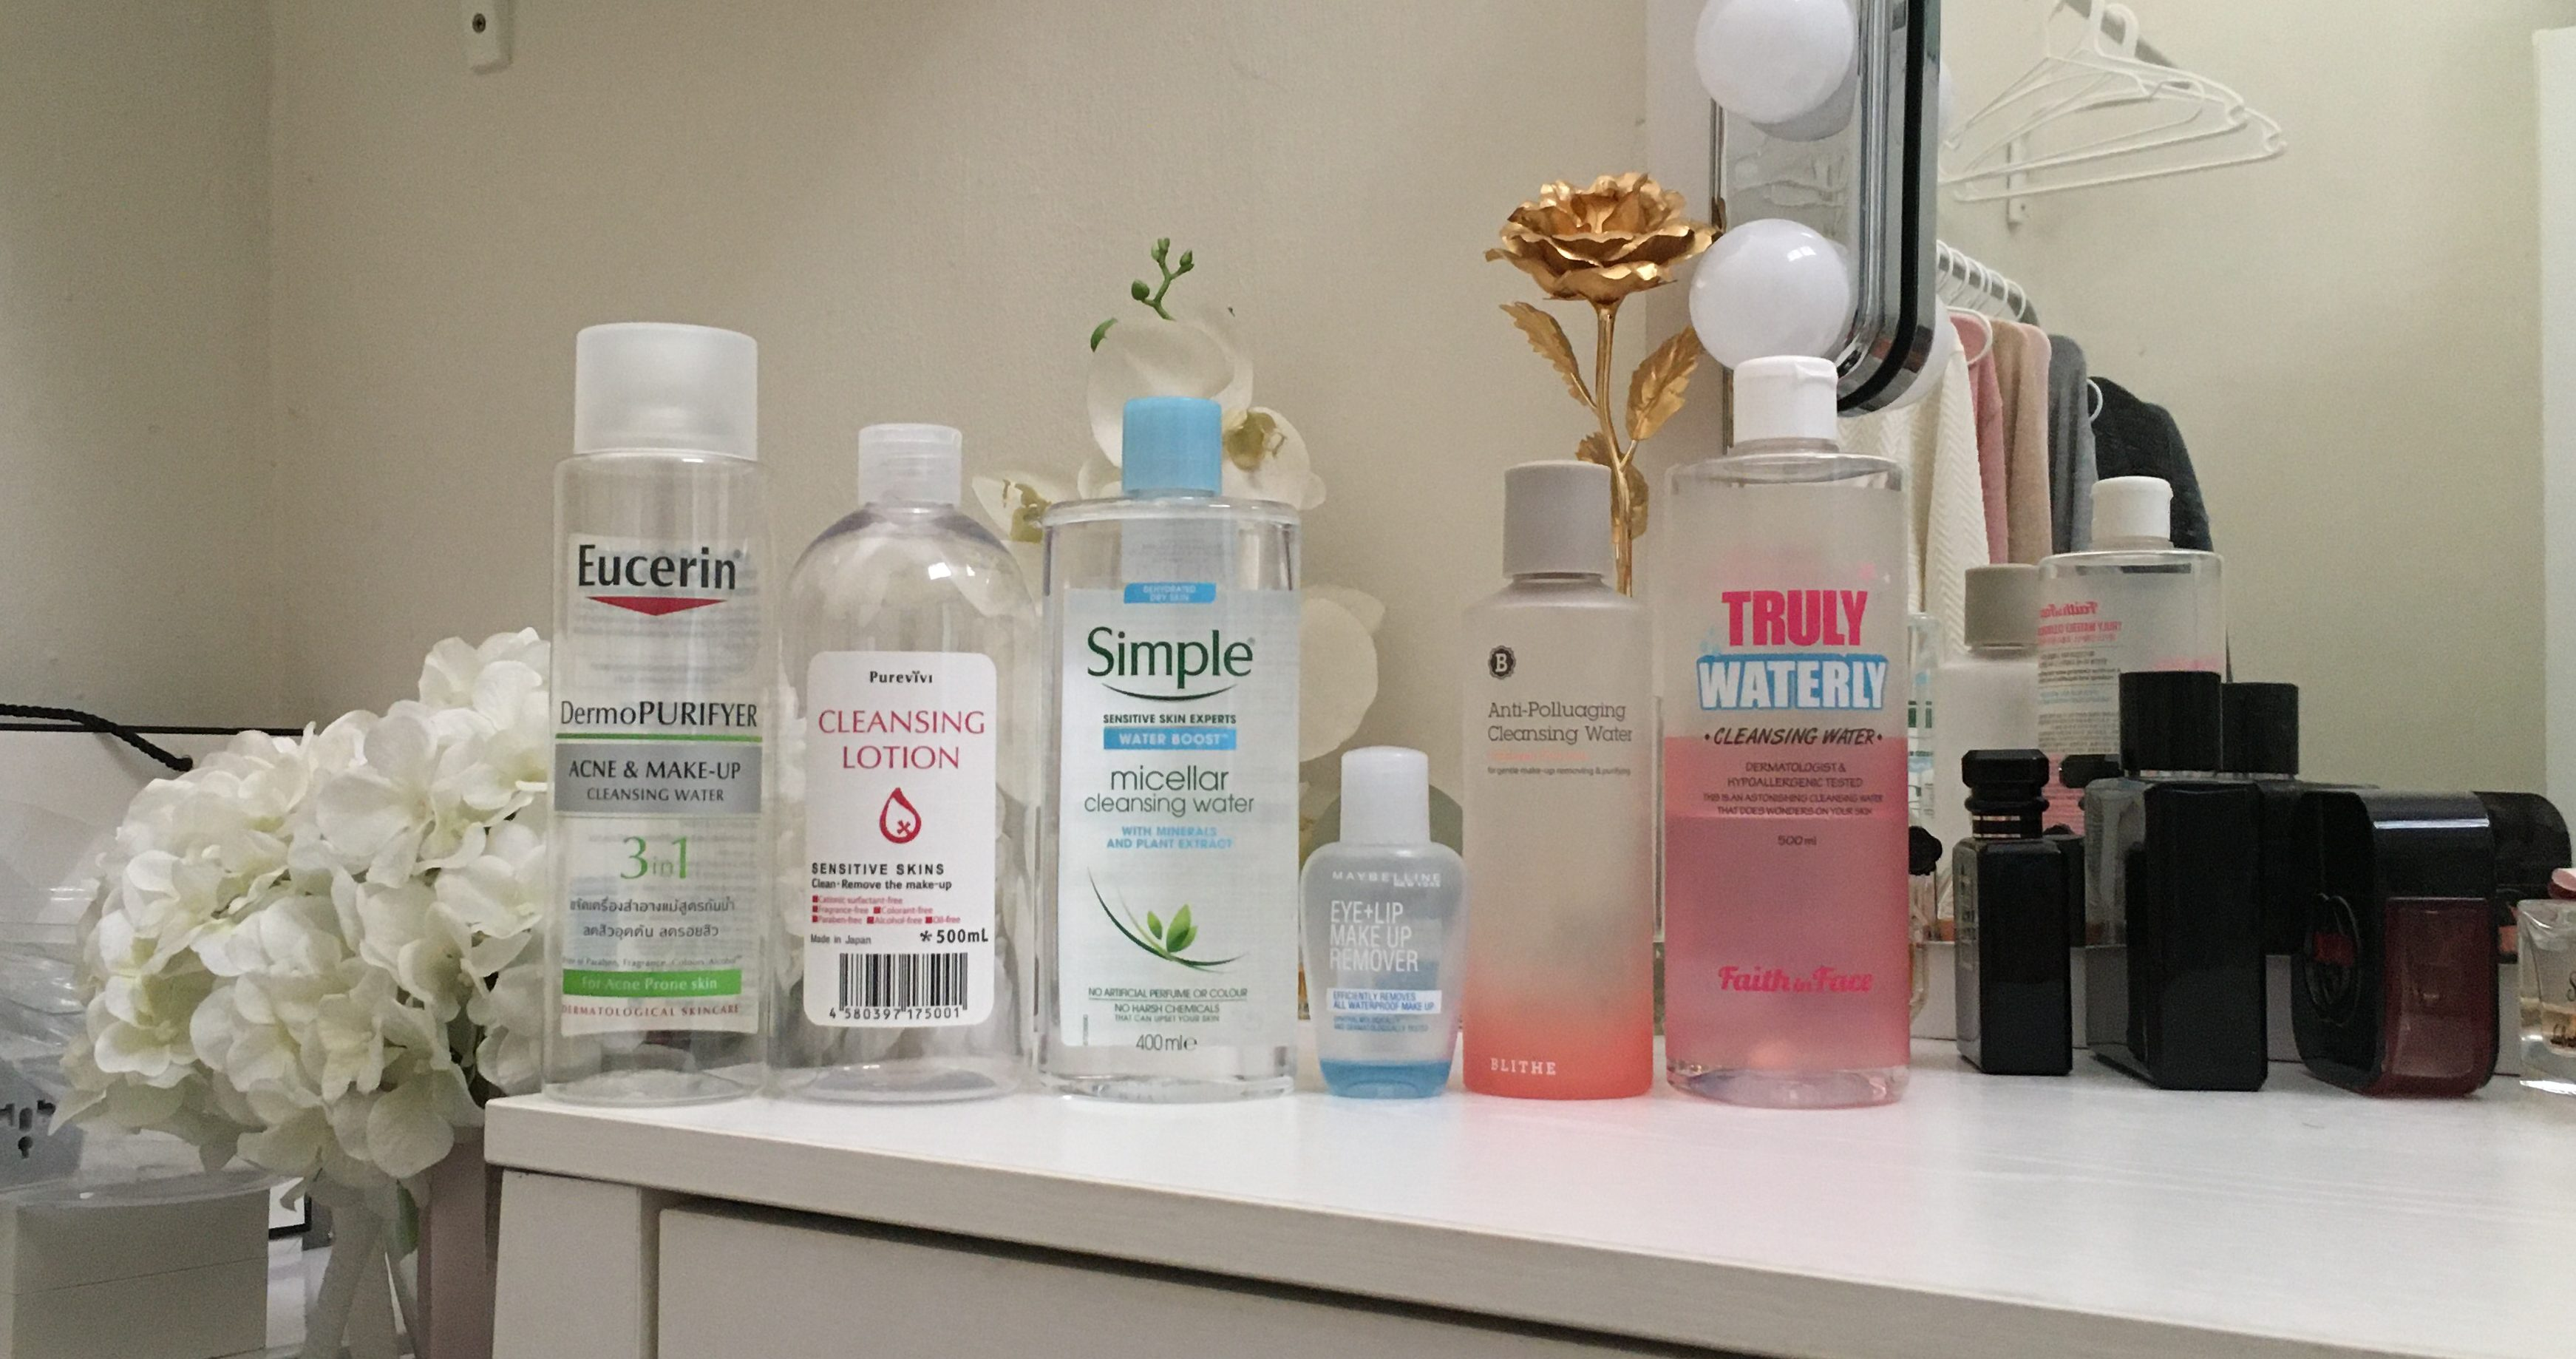 Things I Look For In A Micellar Water Or A Cleansing Water